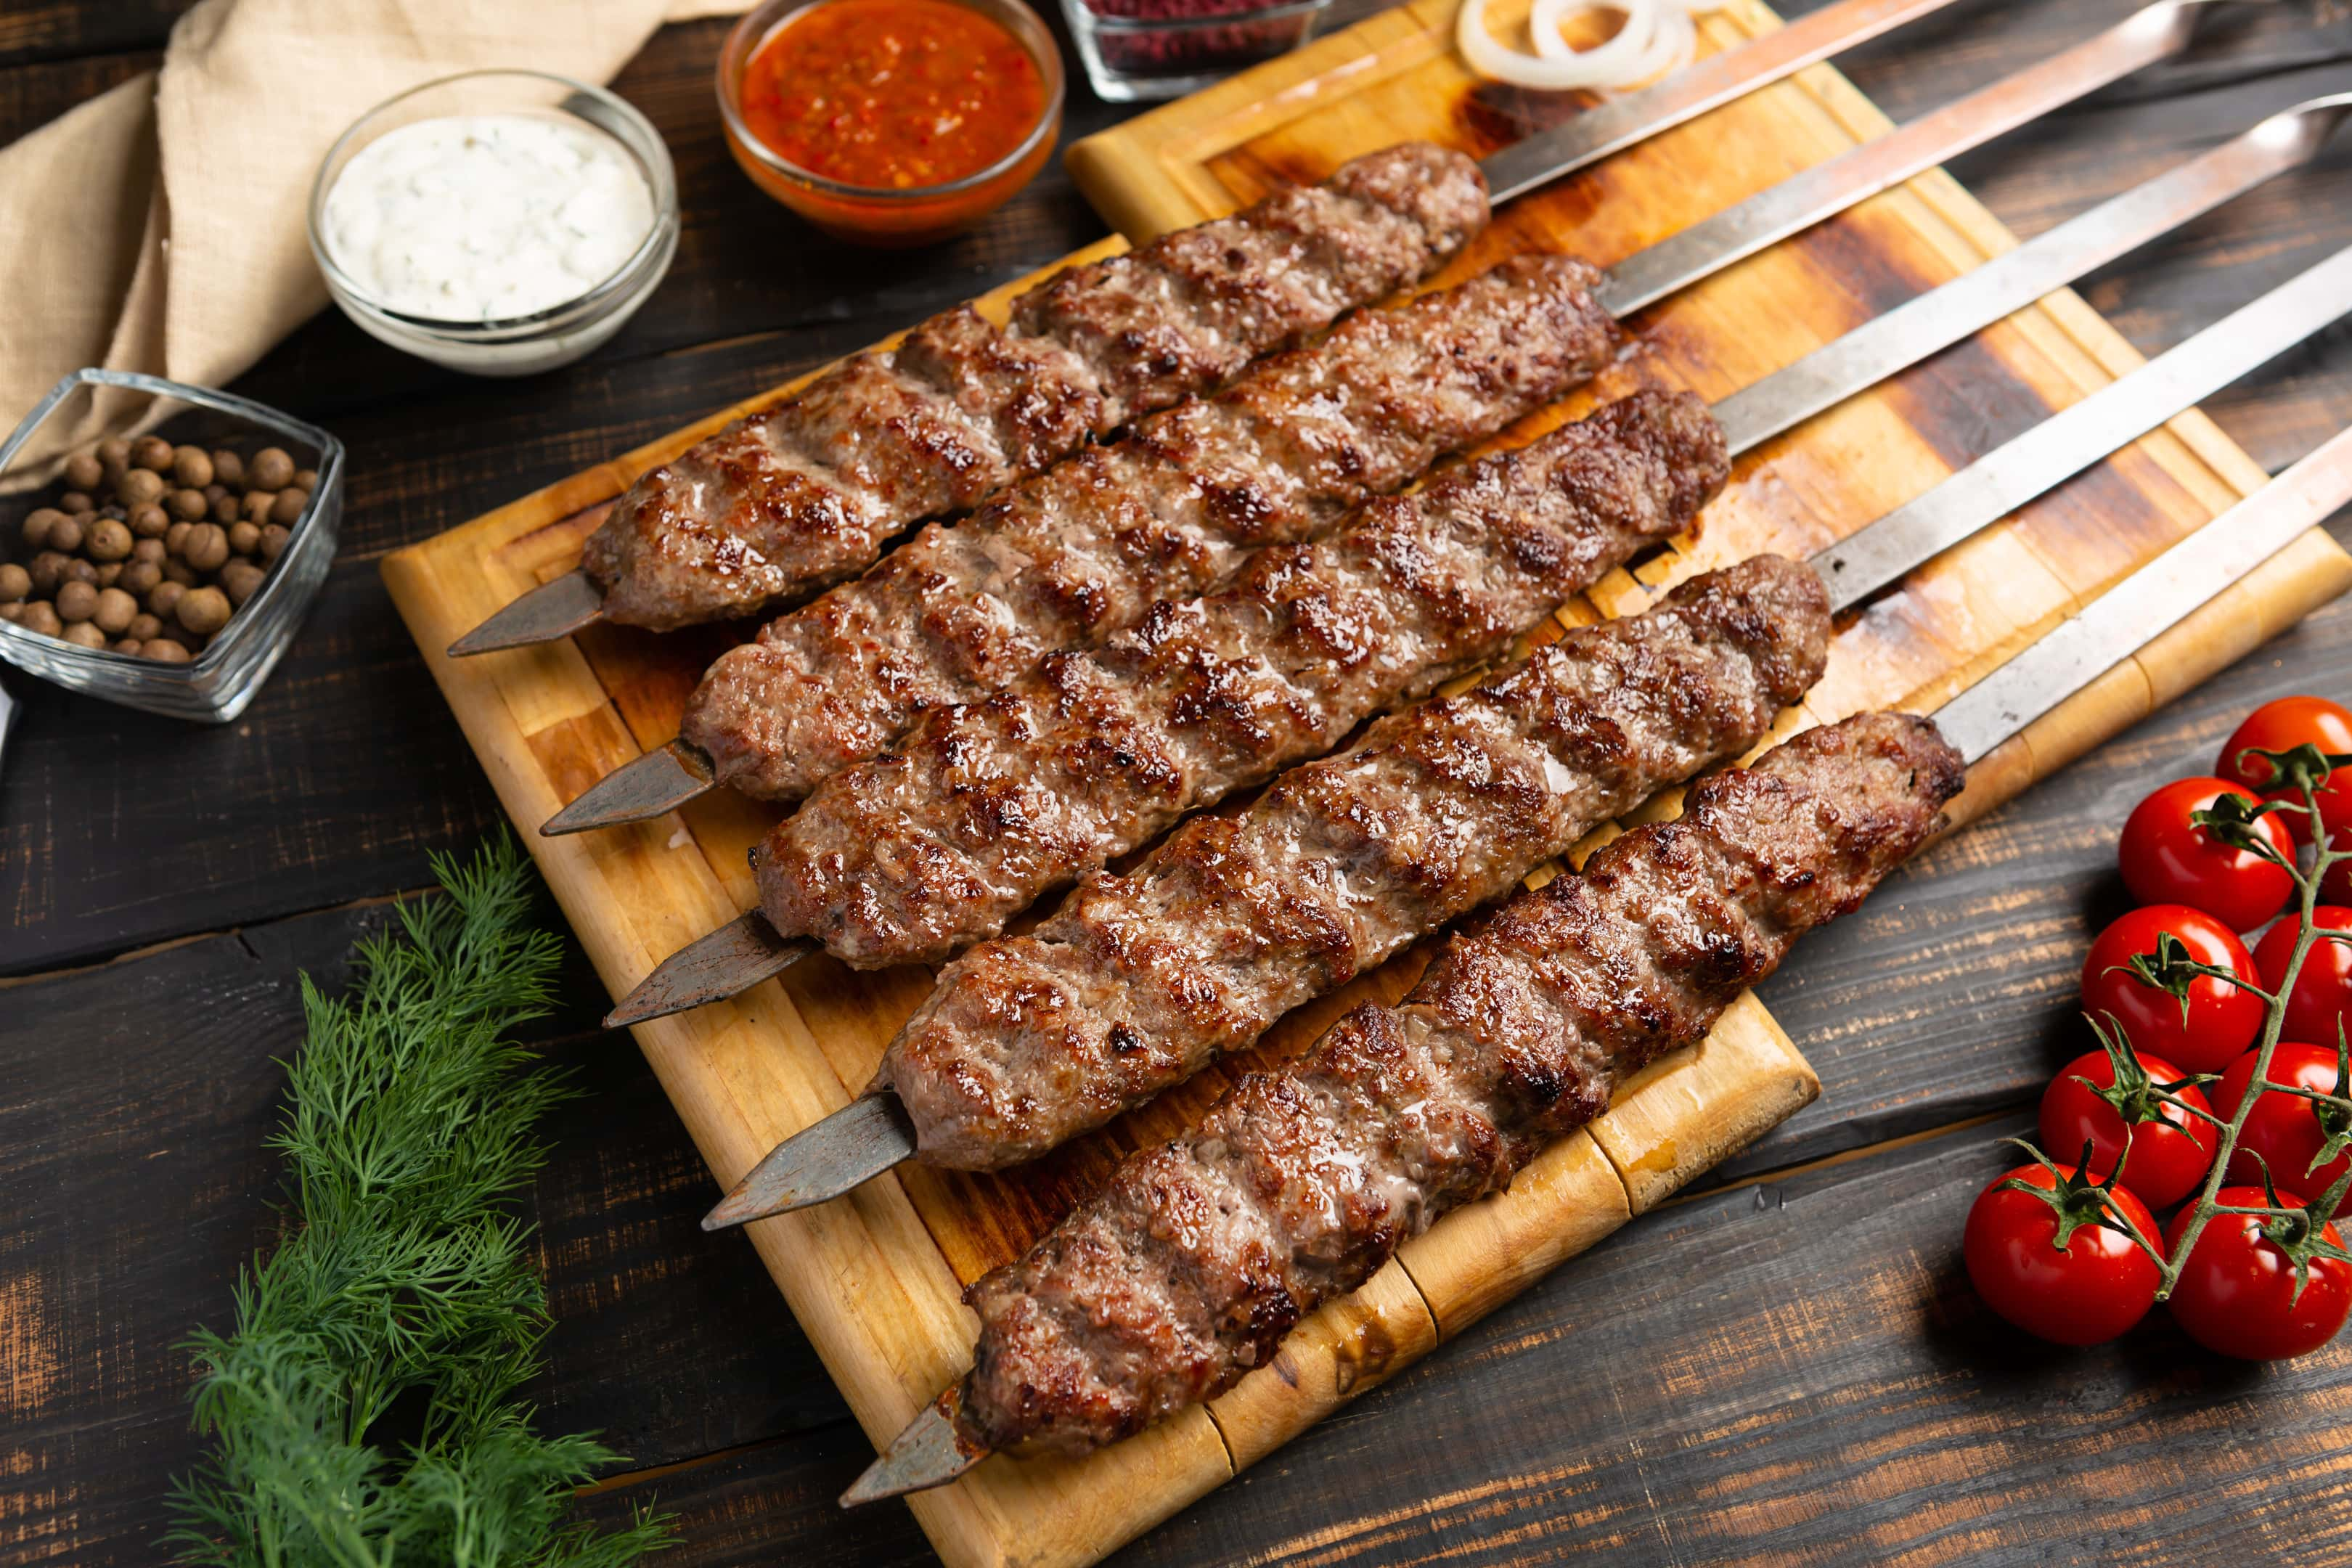 Kebab made from minced beef and lamb meat